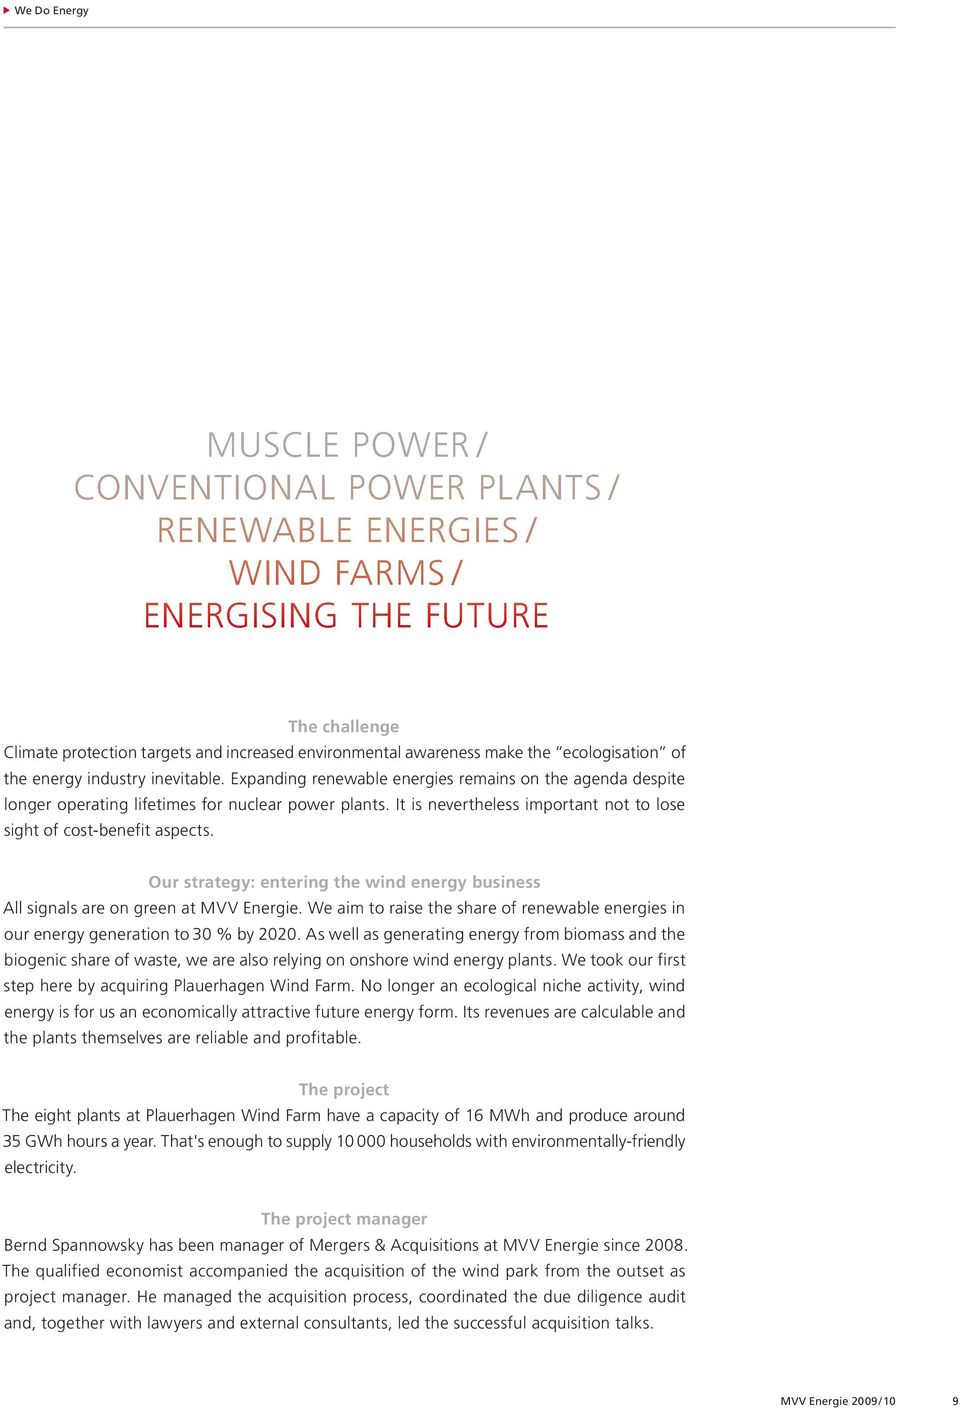 itisneverthelessimportantnottolose sight of cost-benefit aspects. Our strategy: entering the wind energy business AllsignalsareongreenatMVVEnergie.